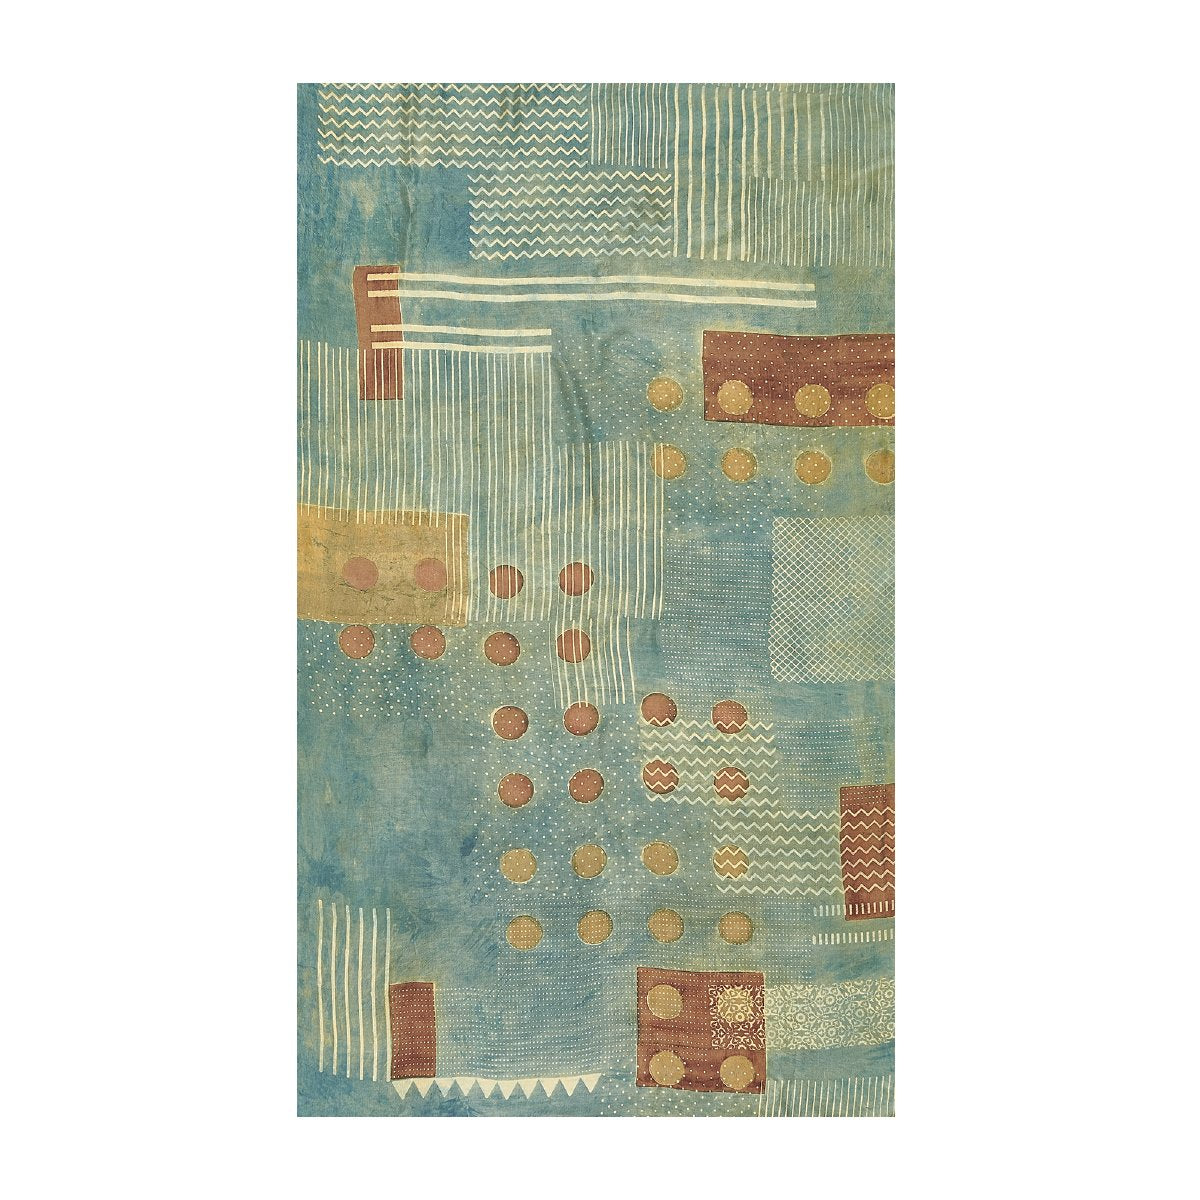 Natural Indigo Multi Color Block Printed Rug. Block, spotted and wave design in pale indigo, rust and natural ochre colors.